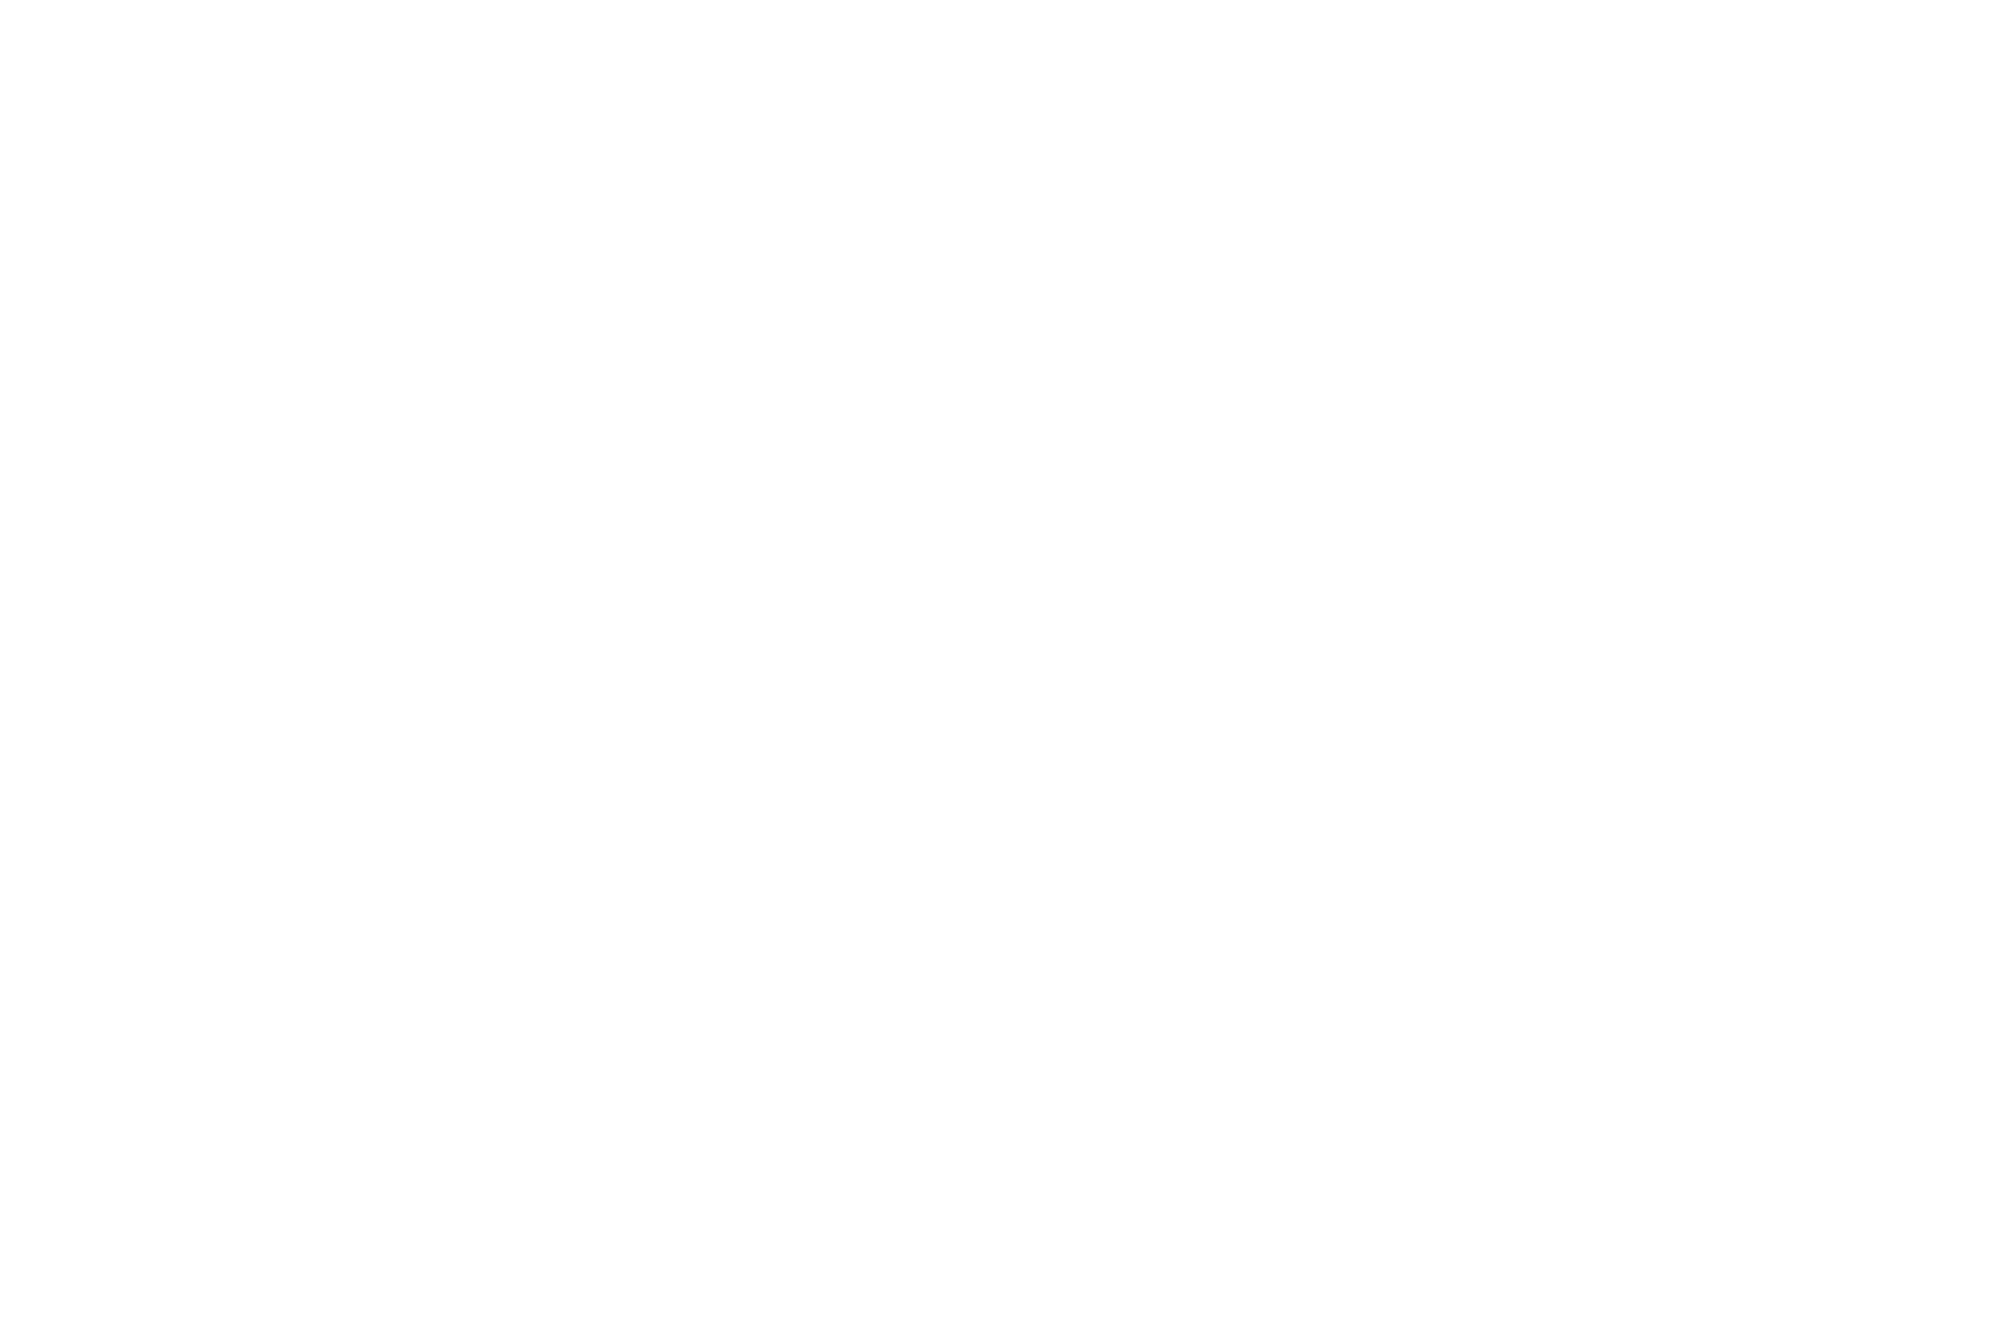 WP Munich